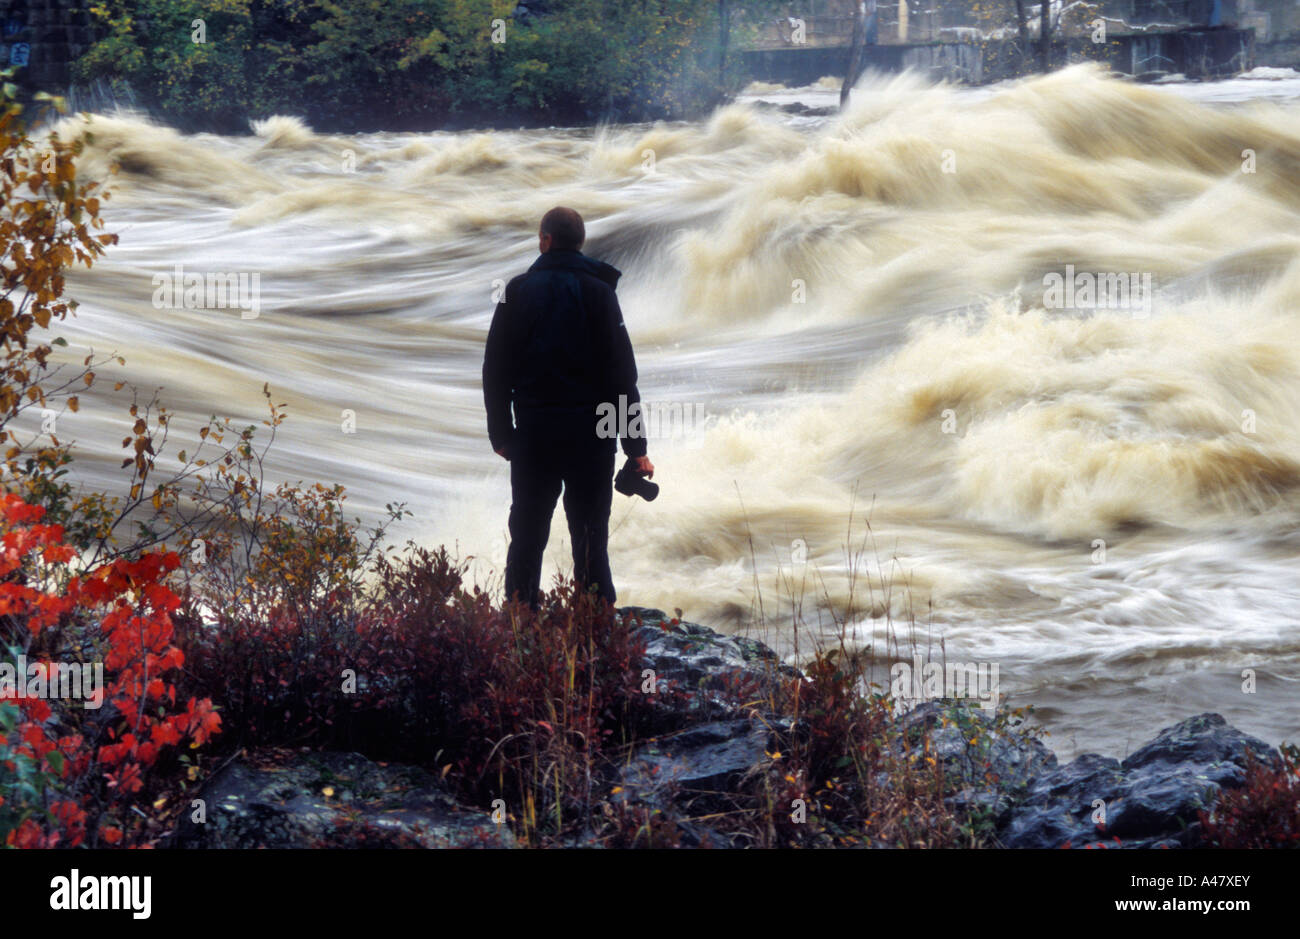 A photographer silhouetted against a river in full flood after autumnal storms Stock Photo